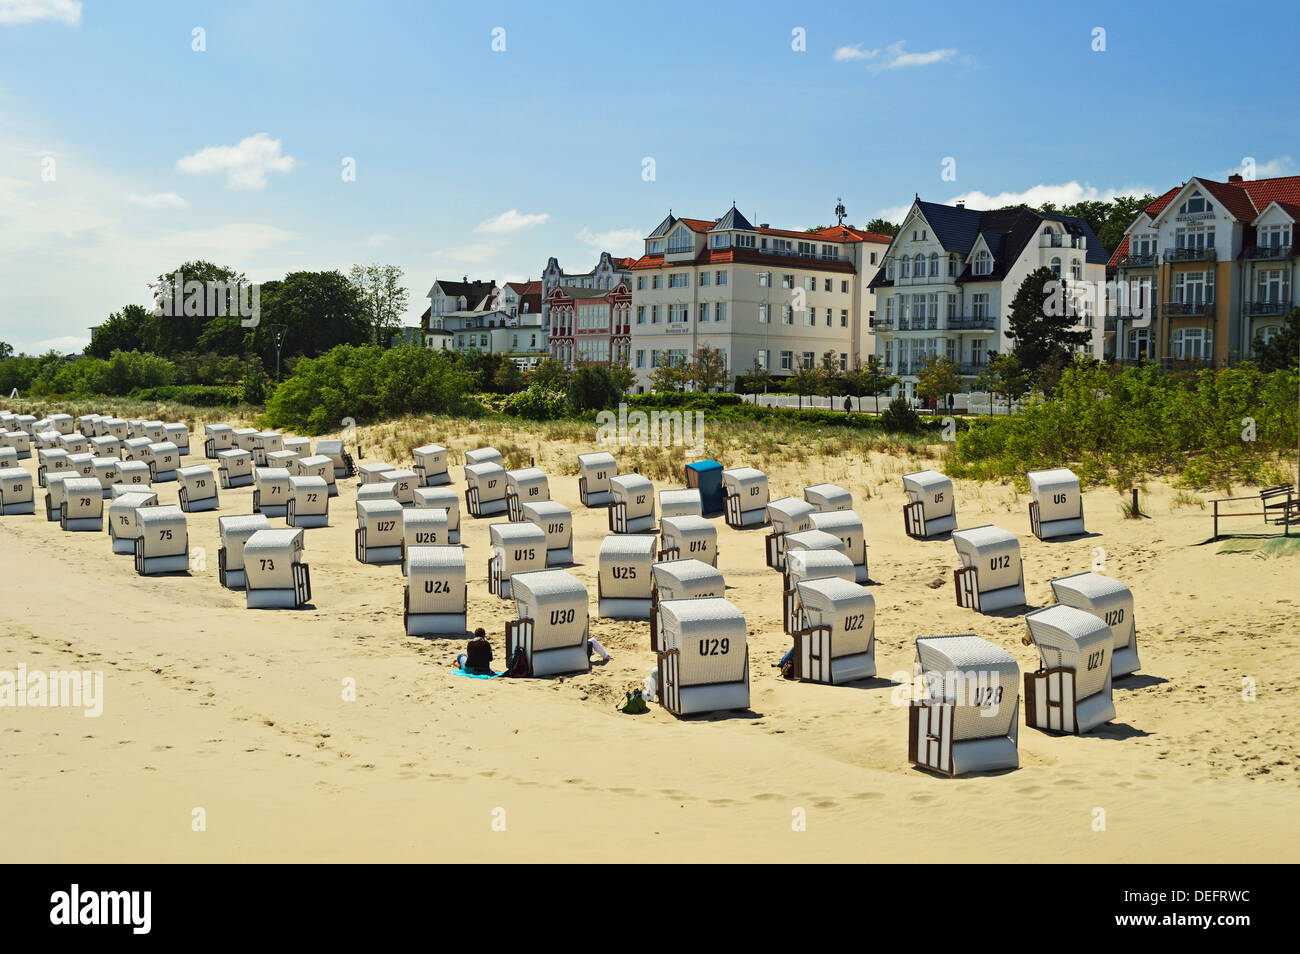 Beach chairs, Bansin, Usedom, Mecklenburg-Vorpommern, Germany, Baltic Sea, Europe - Stock Image